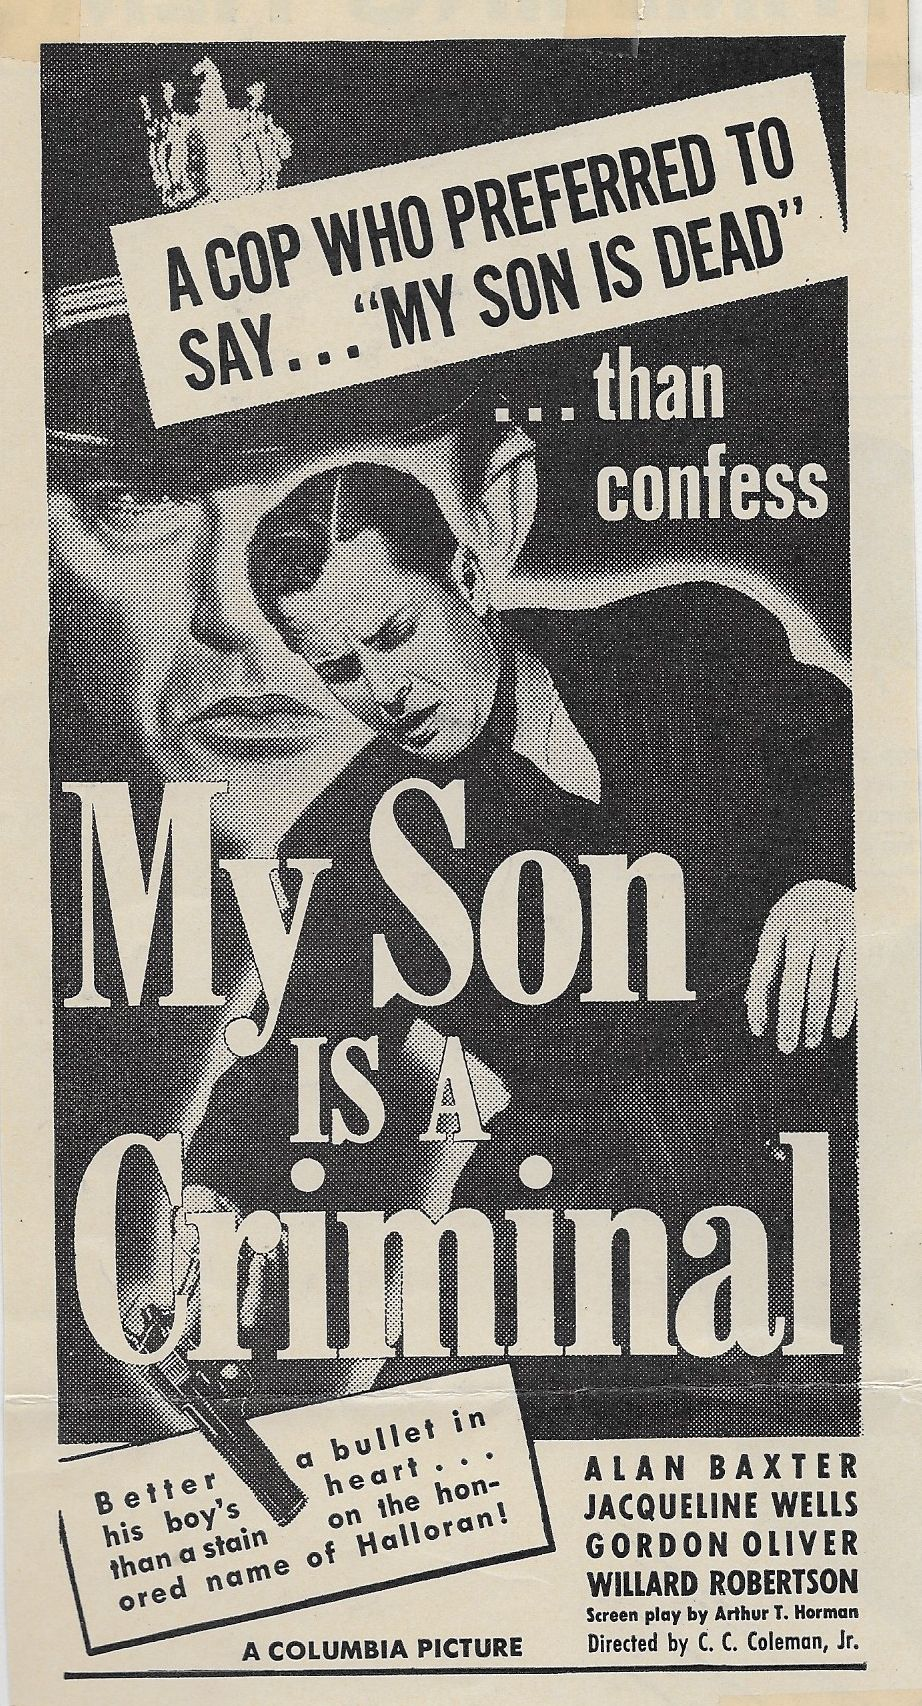 Alan Baxter and Willard Robertson in My Son Is a Criminal (1939)